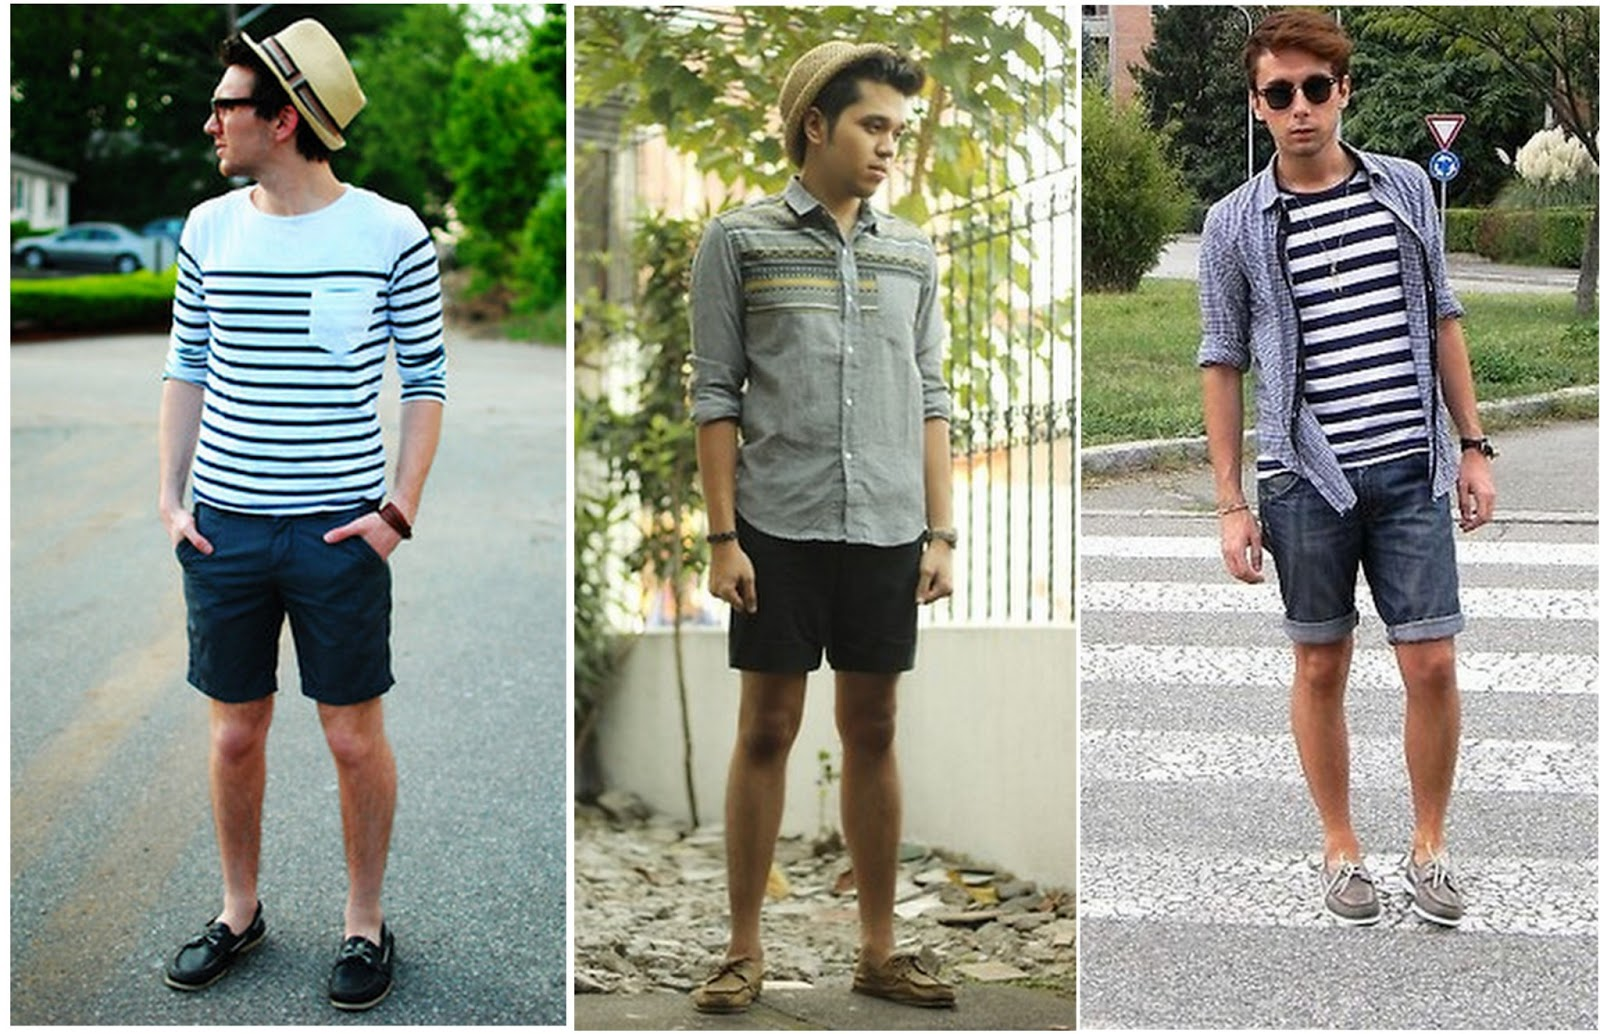 Selection Of Male Shoes Combining Fashion With White Shorts New Fashion Trends Share Fashion